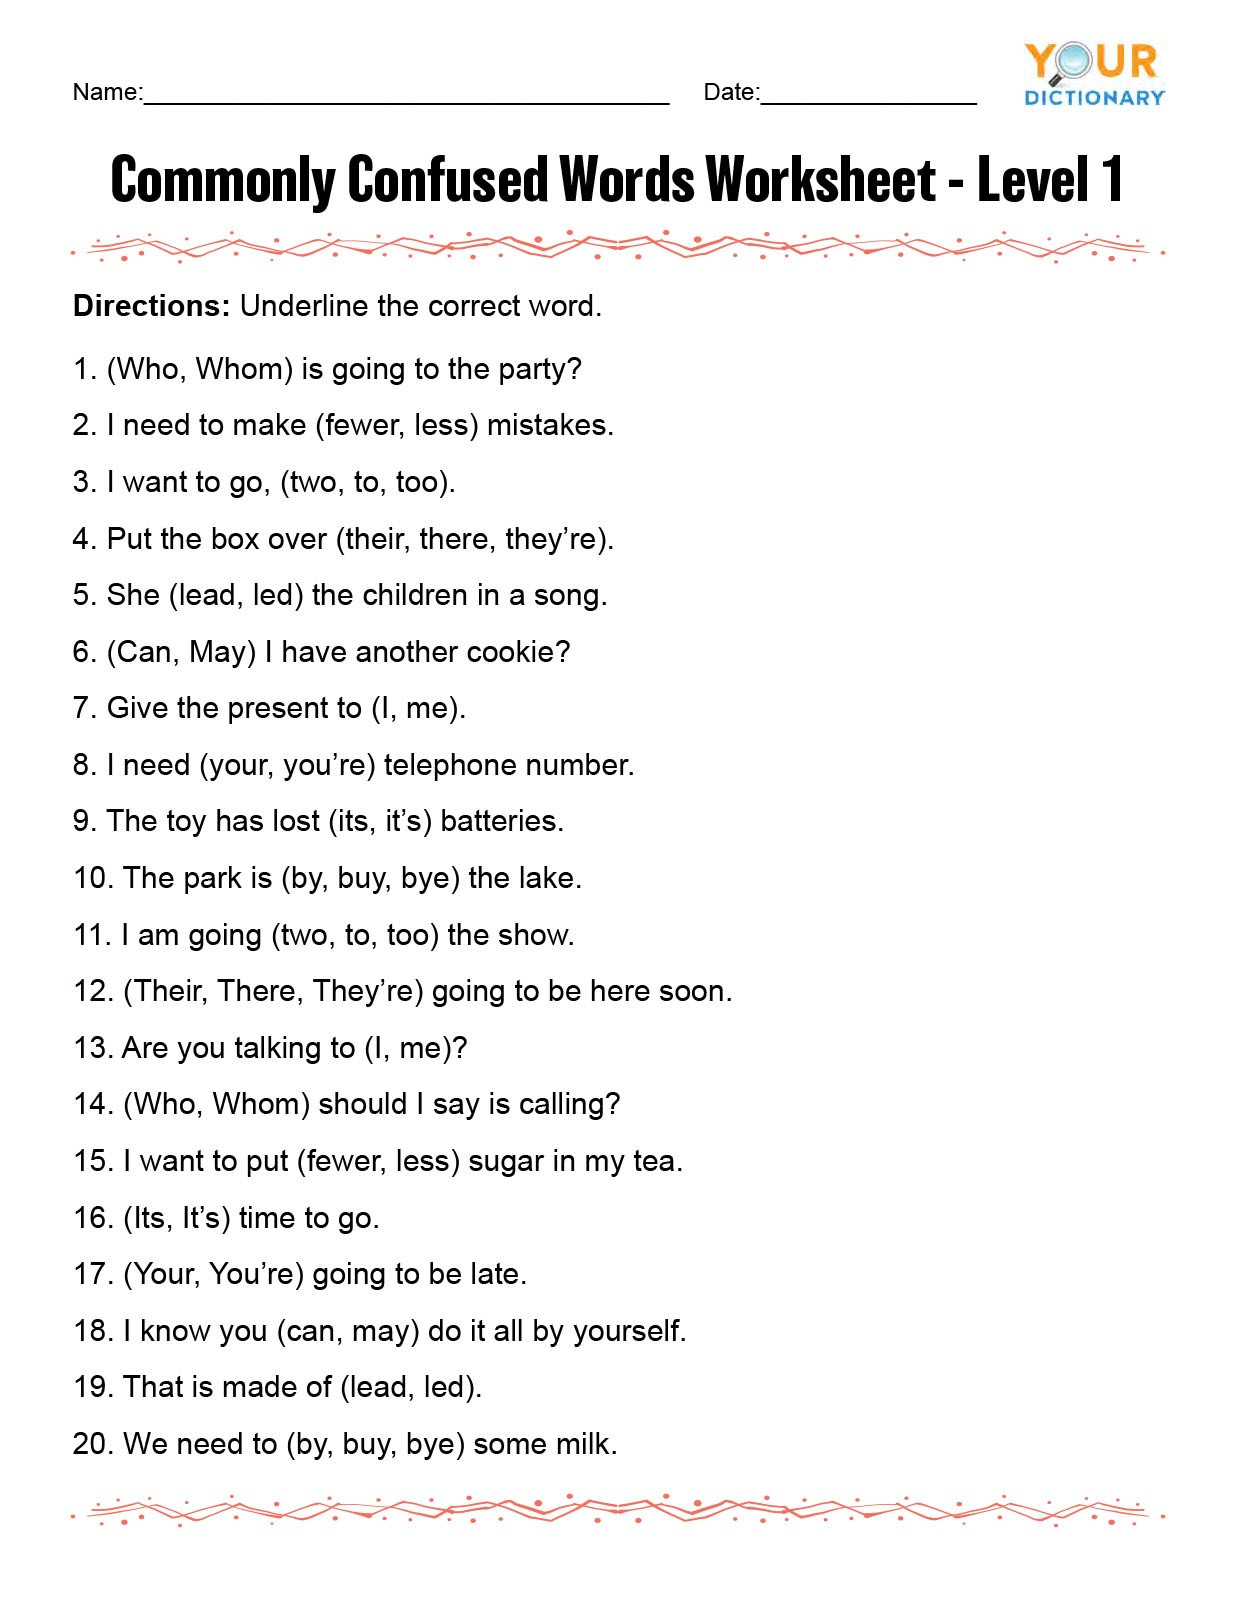 Word form Worksheets 4th Grade Monly Confused Words Worksheet